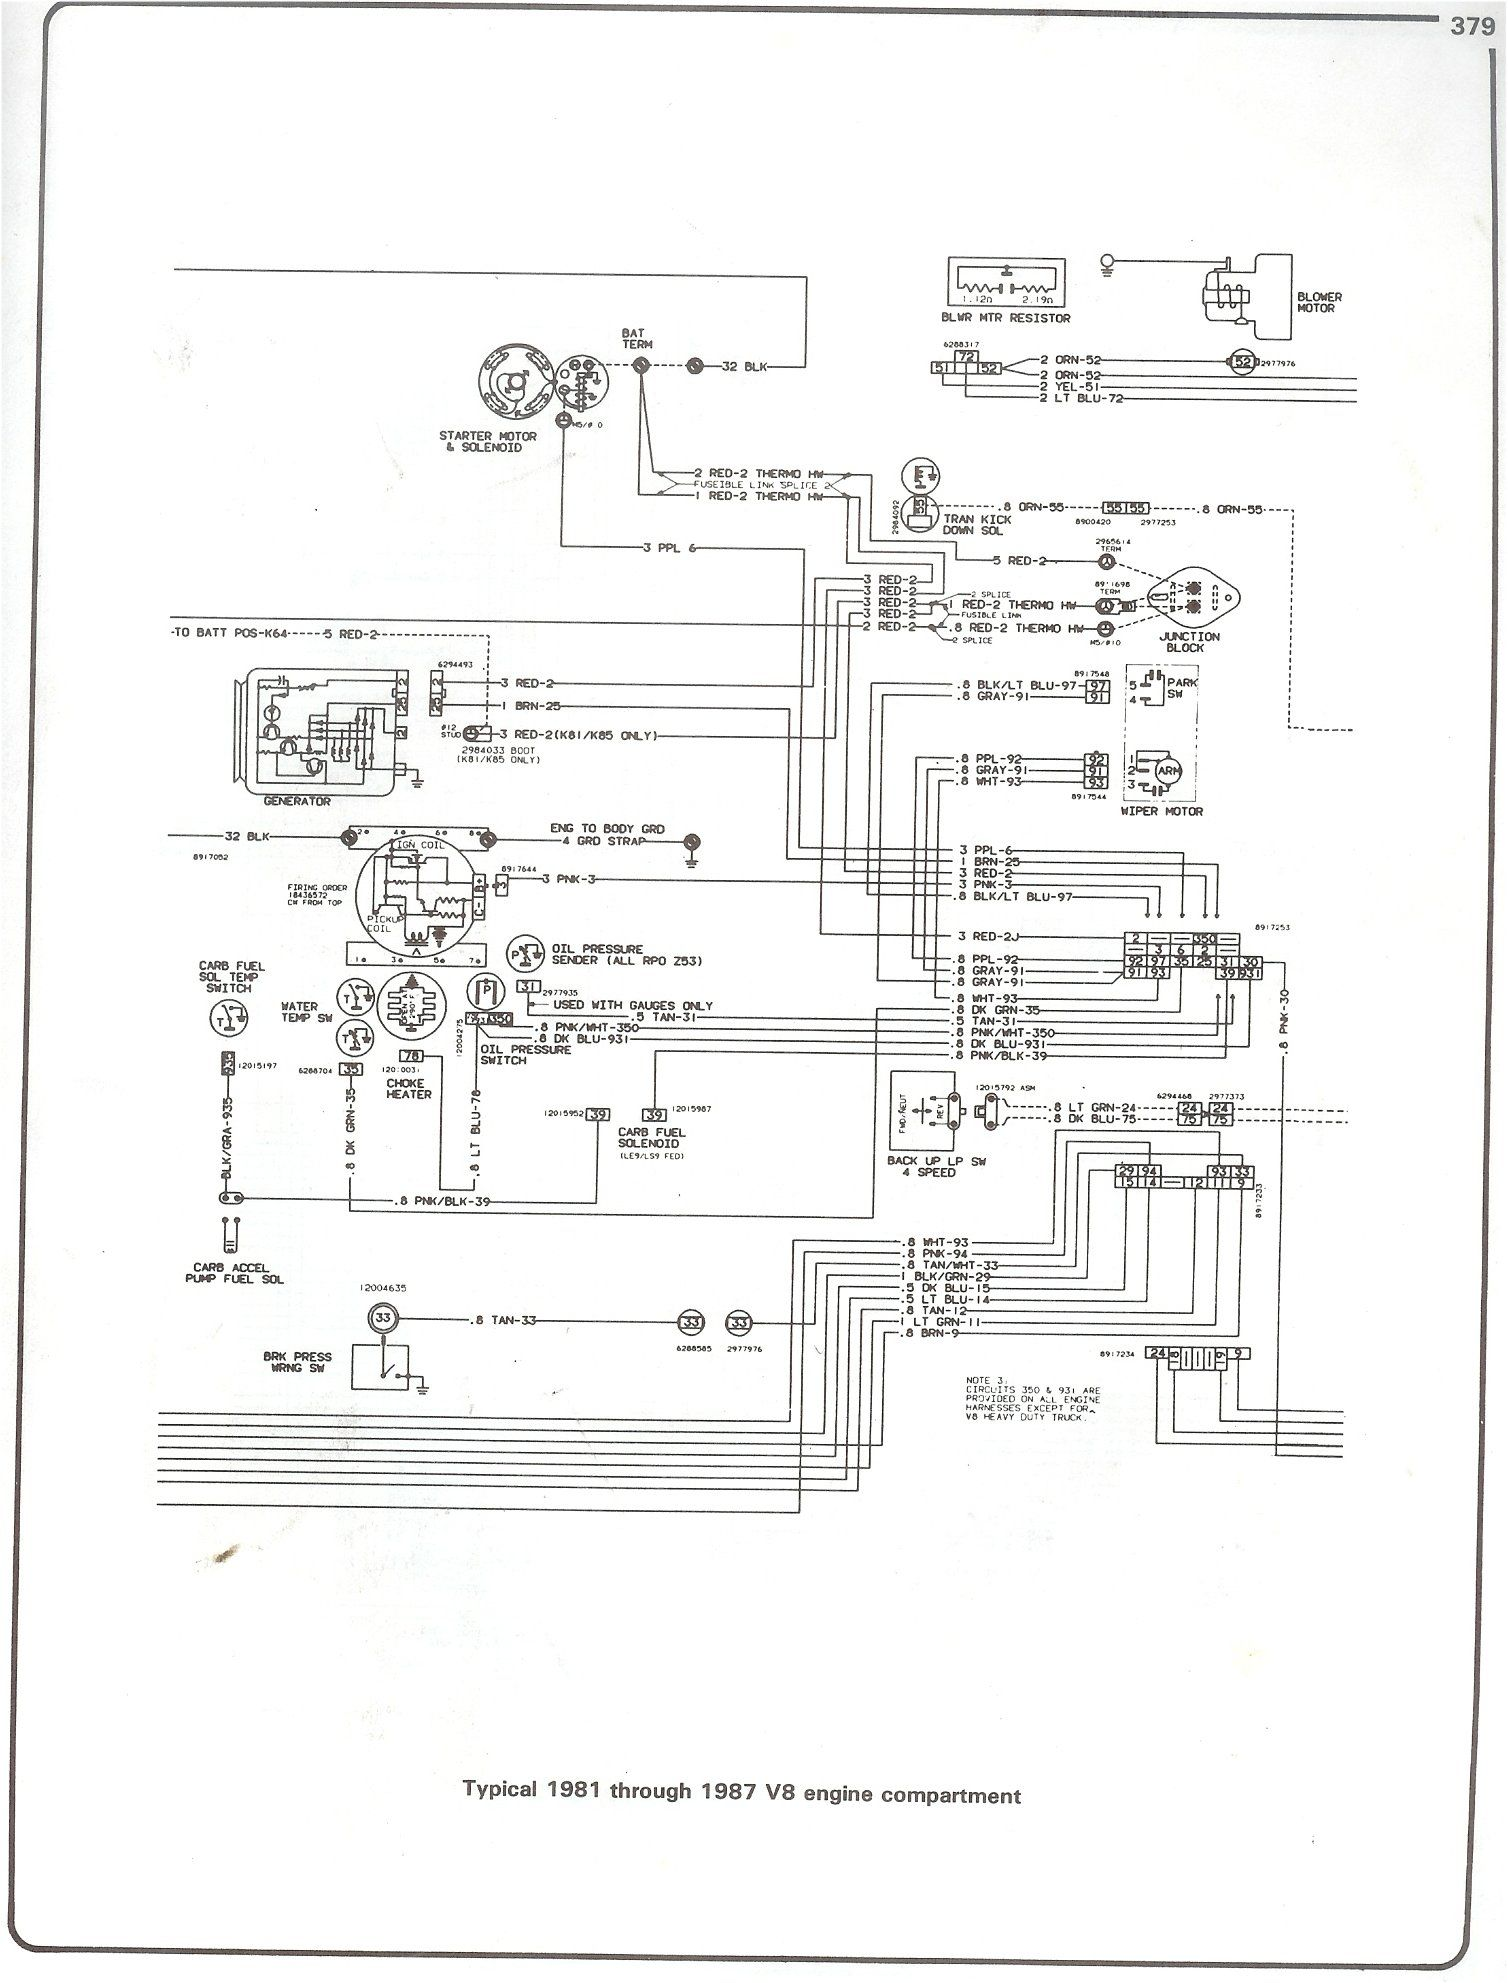 1987 chevy c10 fuse diagram wiring diagrams bib 87 chevy silverado fuse box diagram 1987 chevy [ 1508 x 1983 Pixel ]